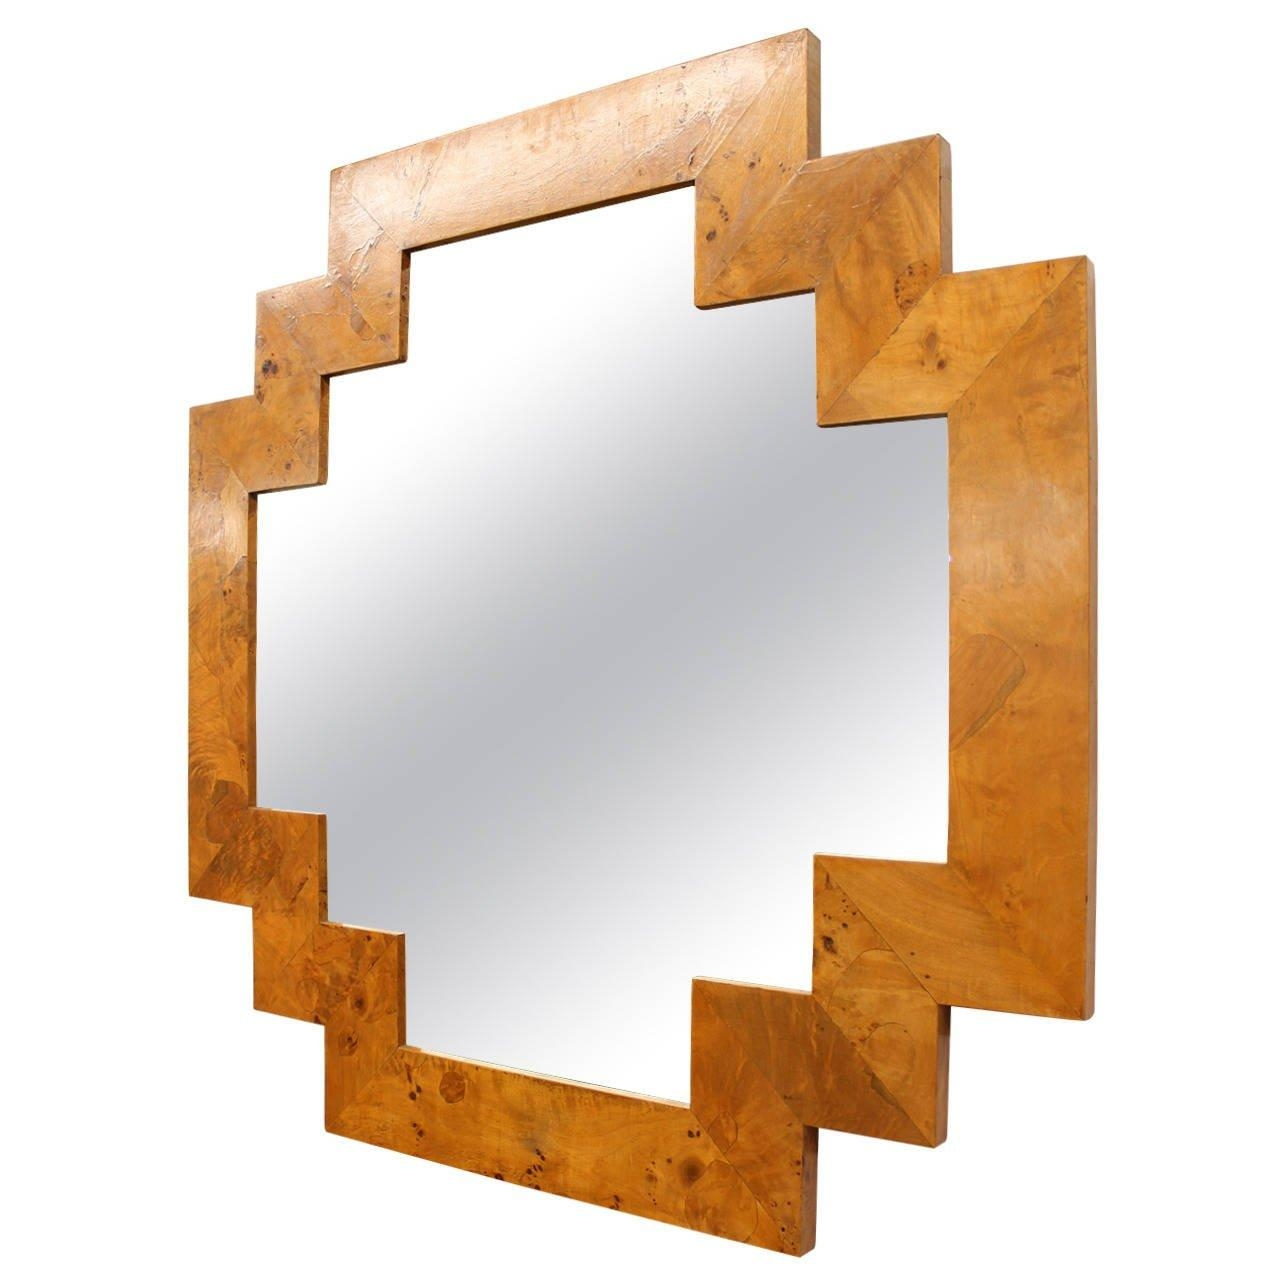 Art Deco Style Geometric Italian Burl Wood Wall Mirror At 1Stdibs Intended For Art Deco Wall Mirrors (Image 4 of 20)